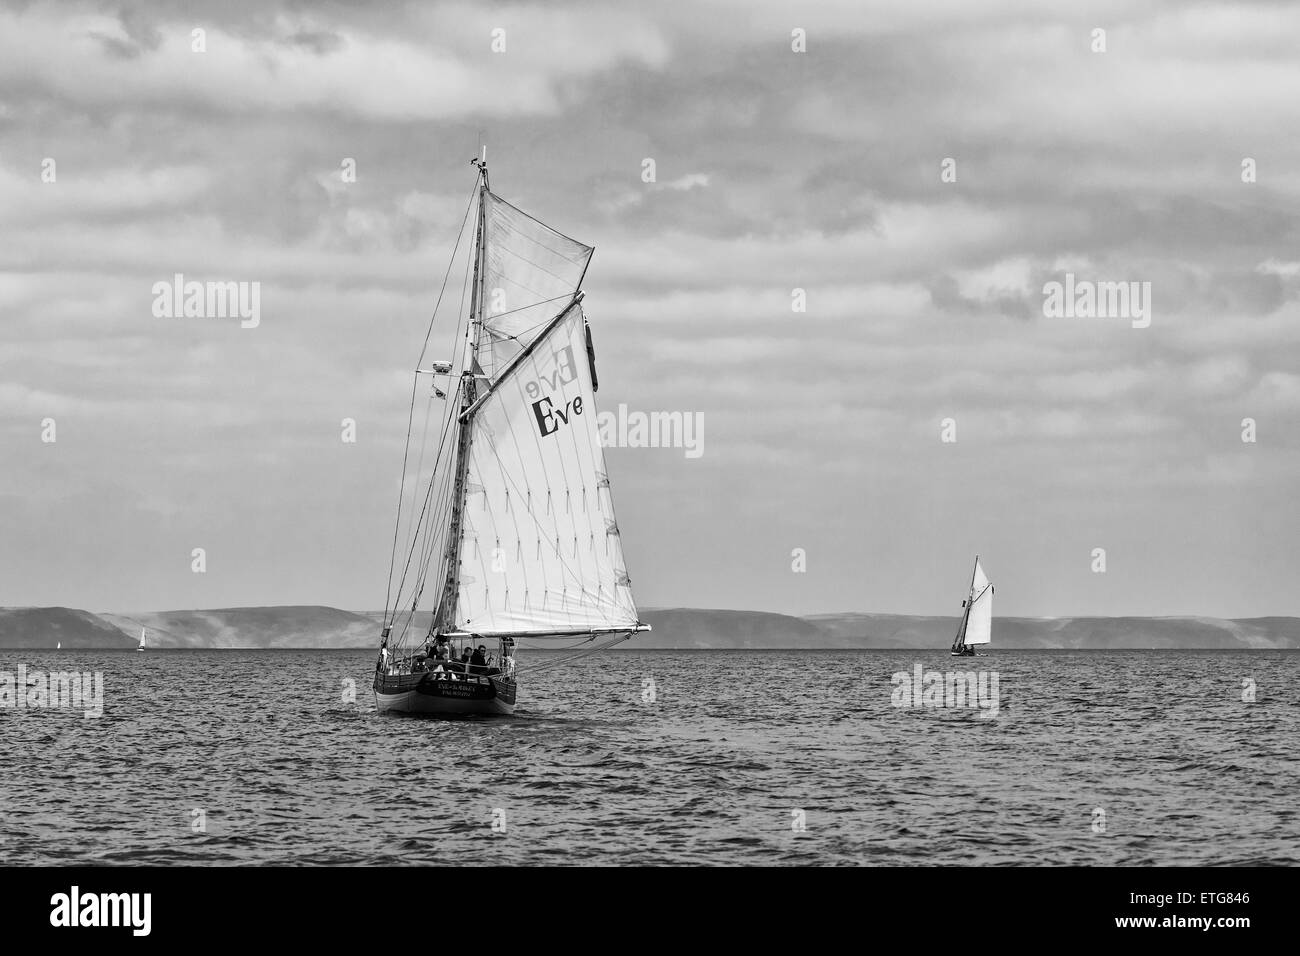 Sailing boats with full sails on a nice quiet day - Stock Image